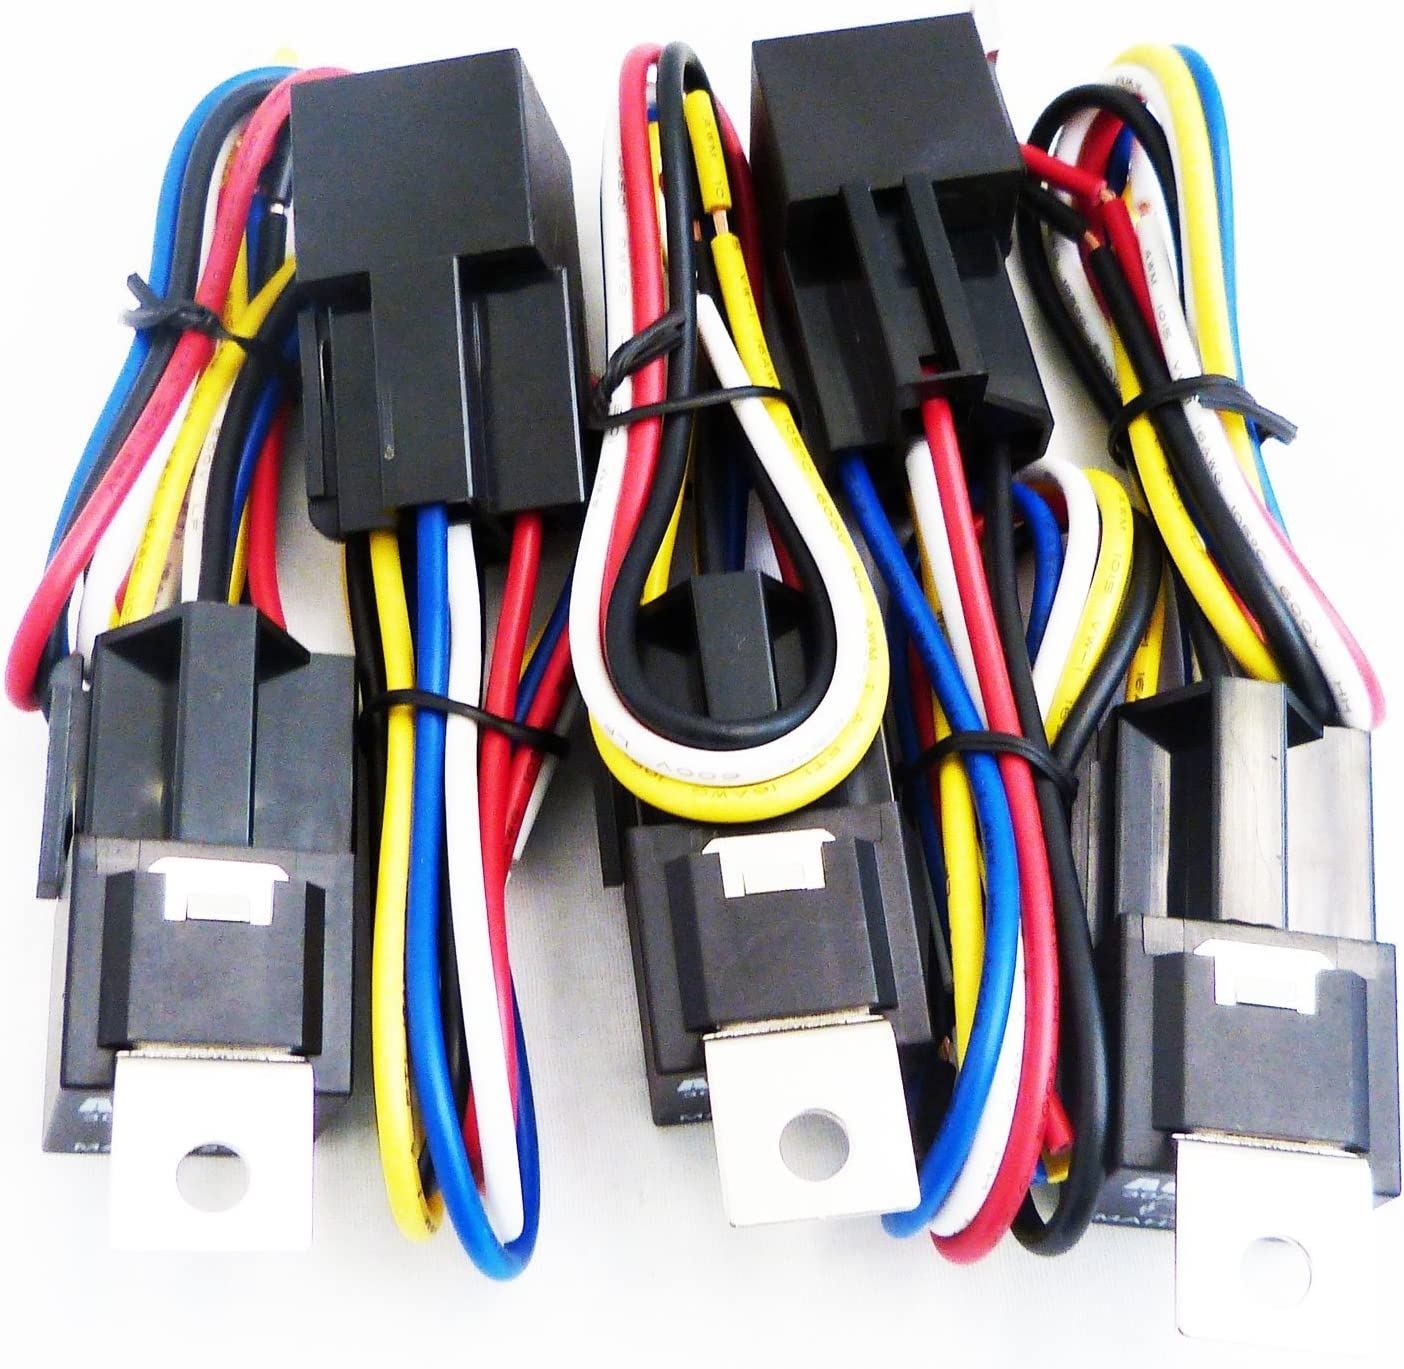 [SCHEMATICS_4JK]  Amazon.com: Genssi 30/40 AMP Auto LED Light Bar Relay Wiring Harness SPDT  12V 40A (Pack of 5): Automotive | Light Bar Wiring Diagram Agt |  | Amazon.com